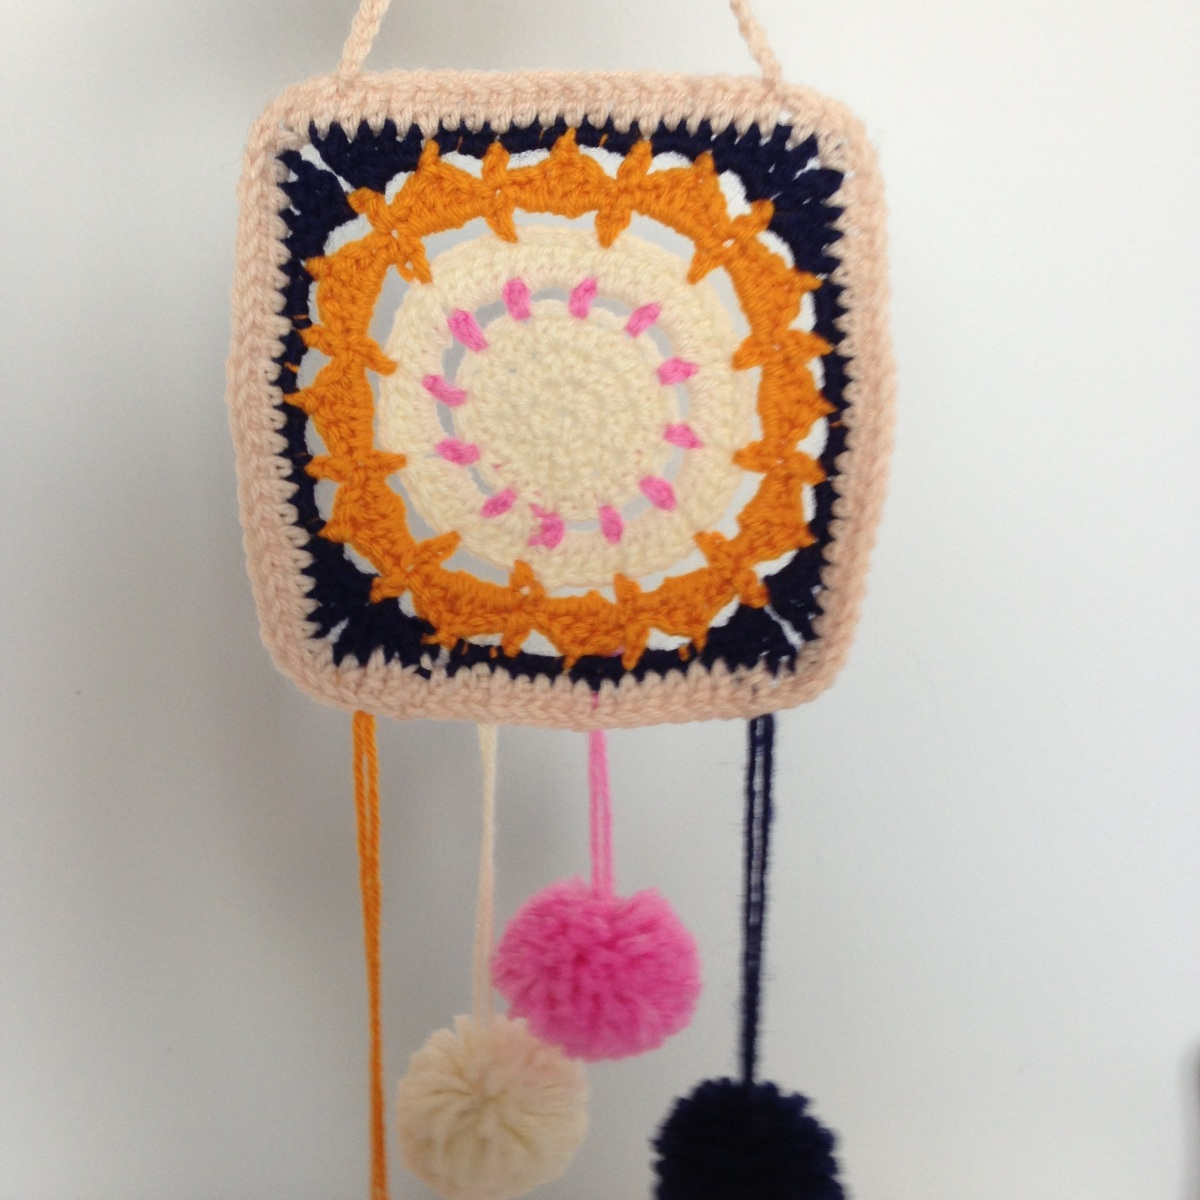 A little crochet wall hanging